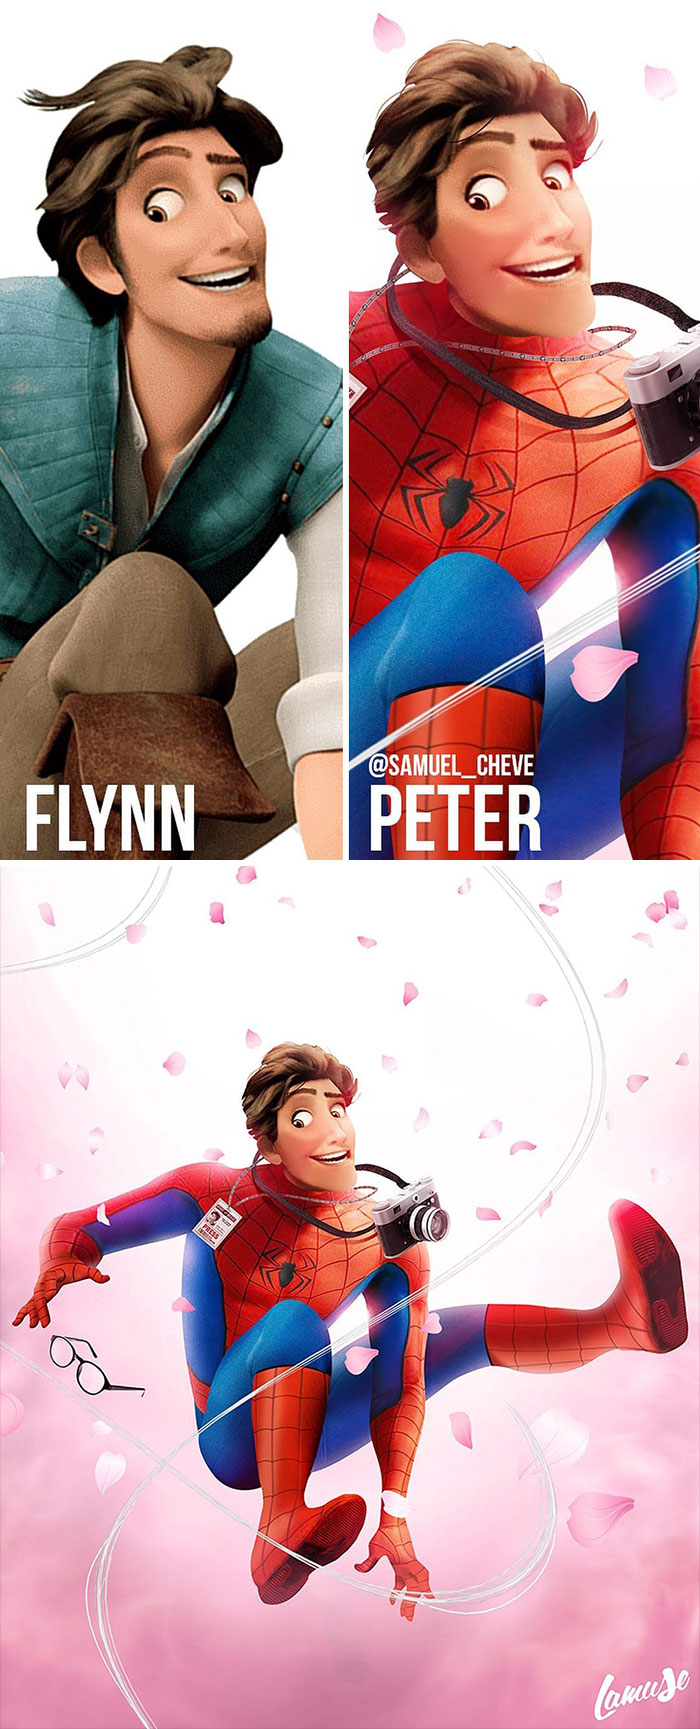 Flynn And Peter Parker 'Spiderman'